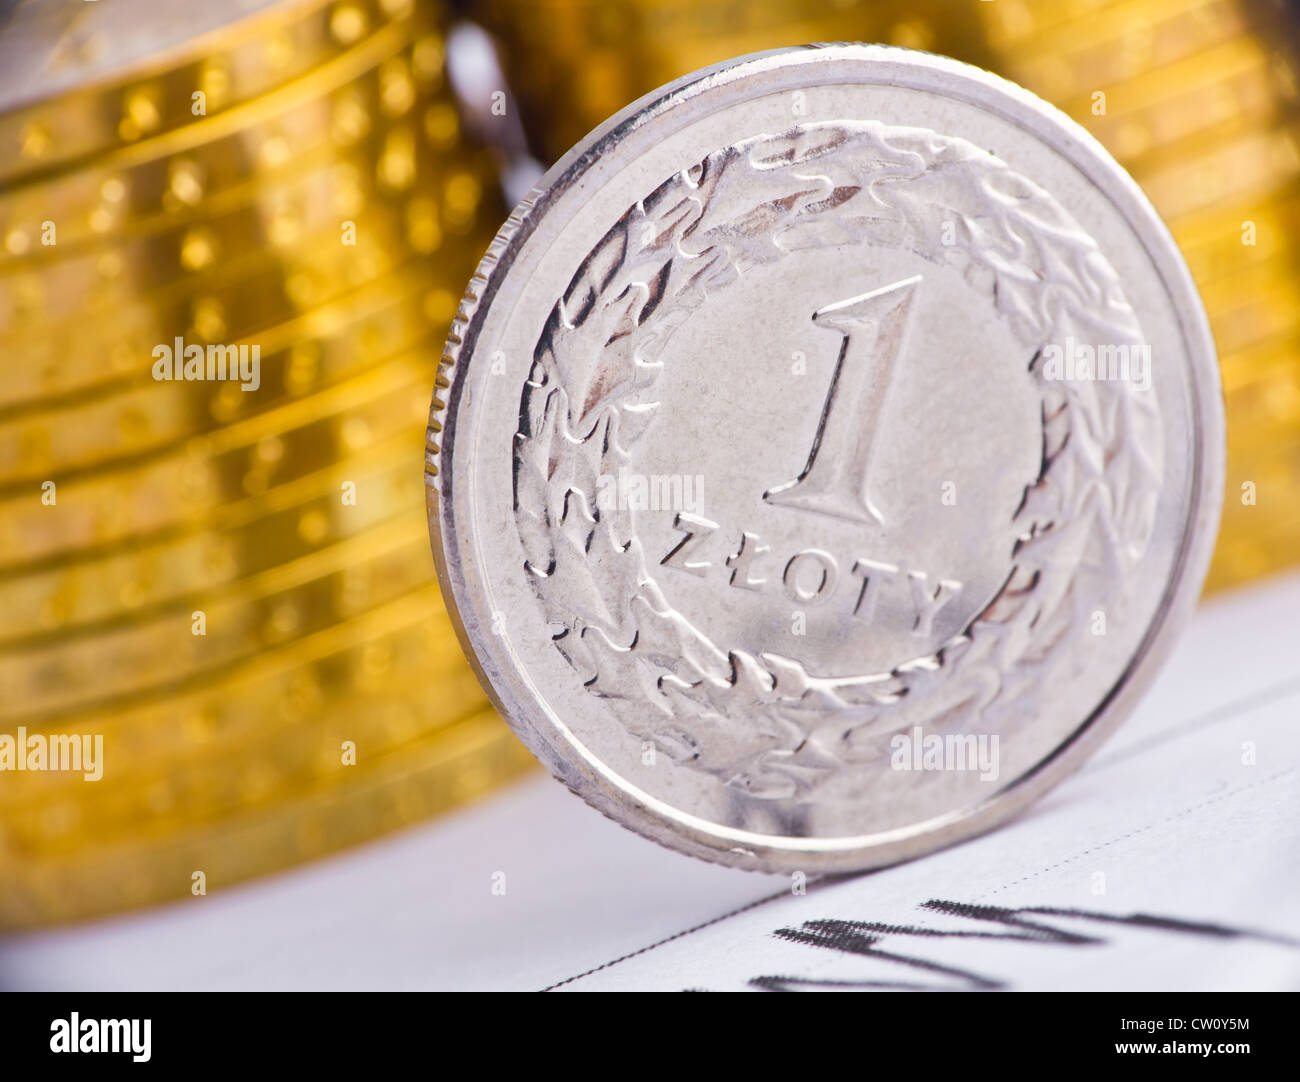 Extremely close up view of Poland currency - Stock Image